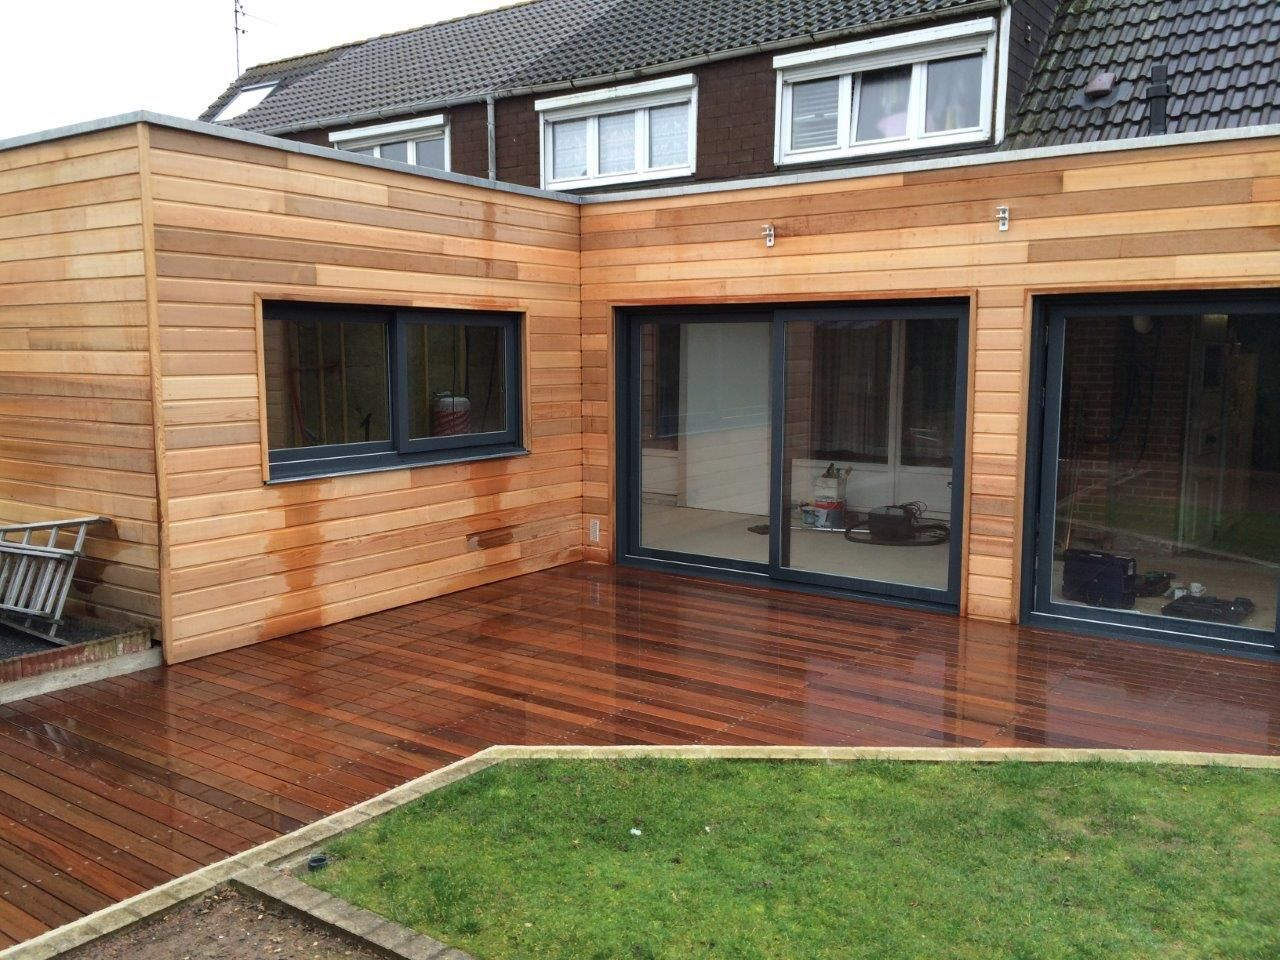 Extention bardage red cedar et terrasse sur plots maison for Extension sur terrasse